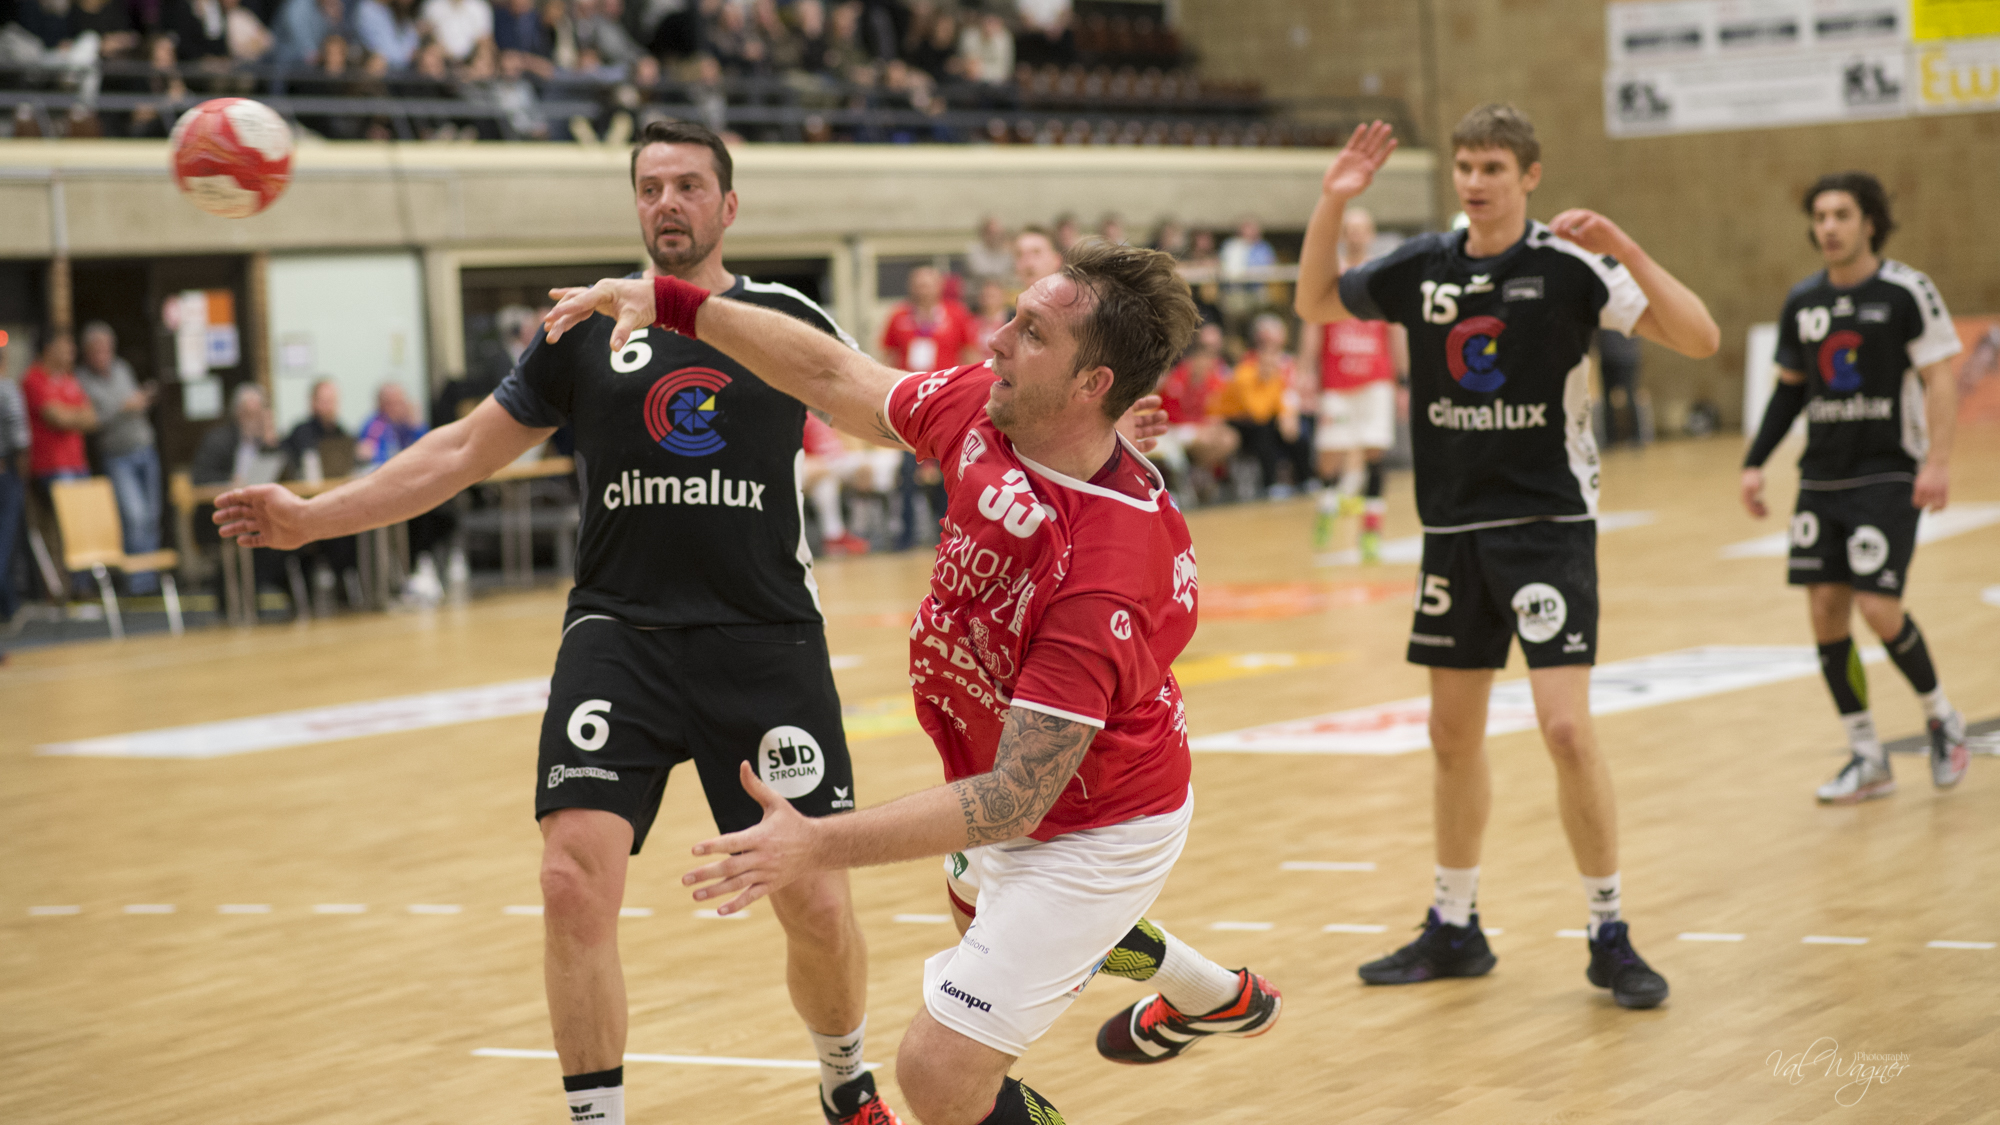 D'Red Boys klappen Esch 31:24